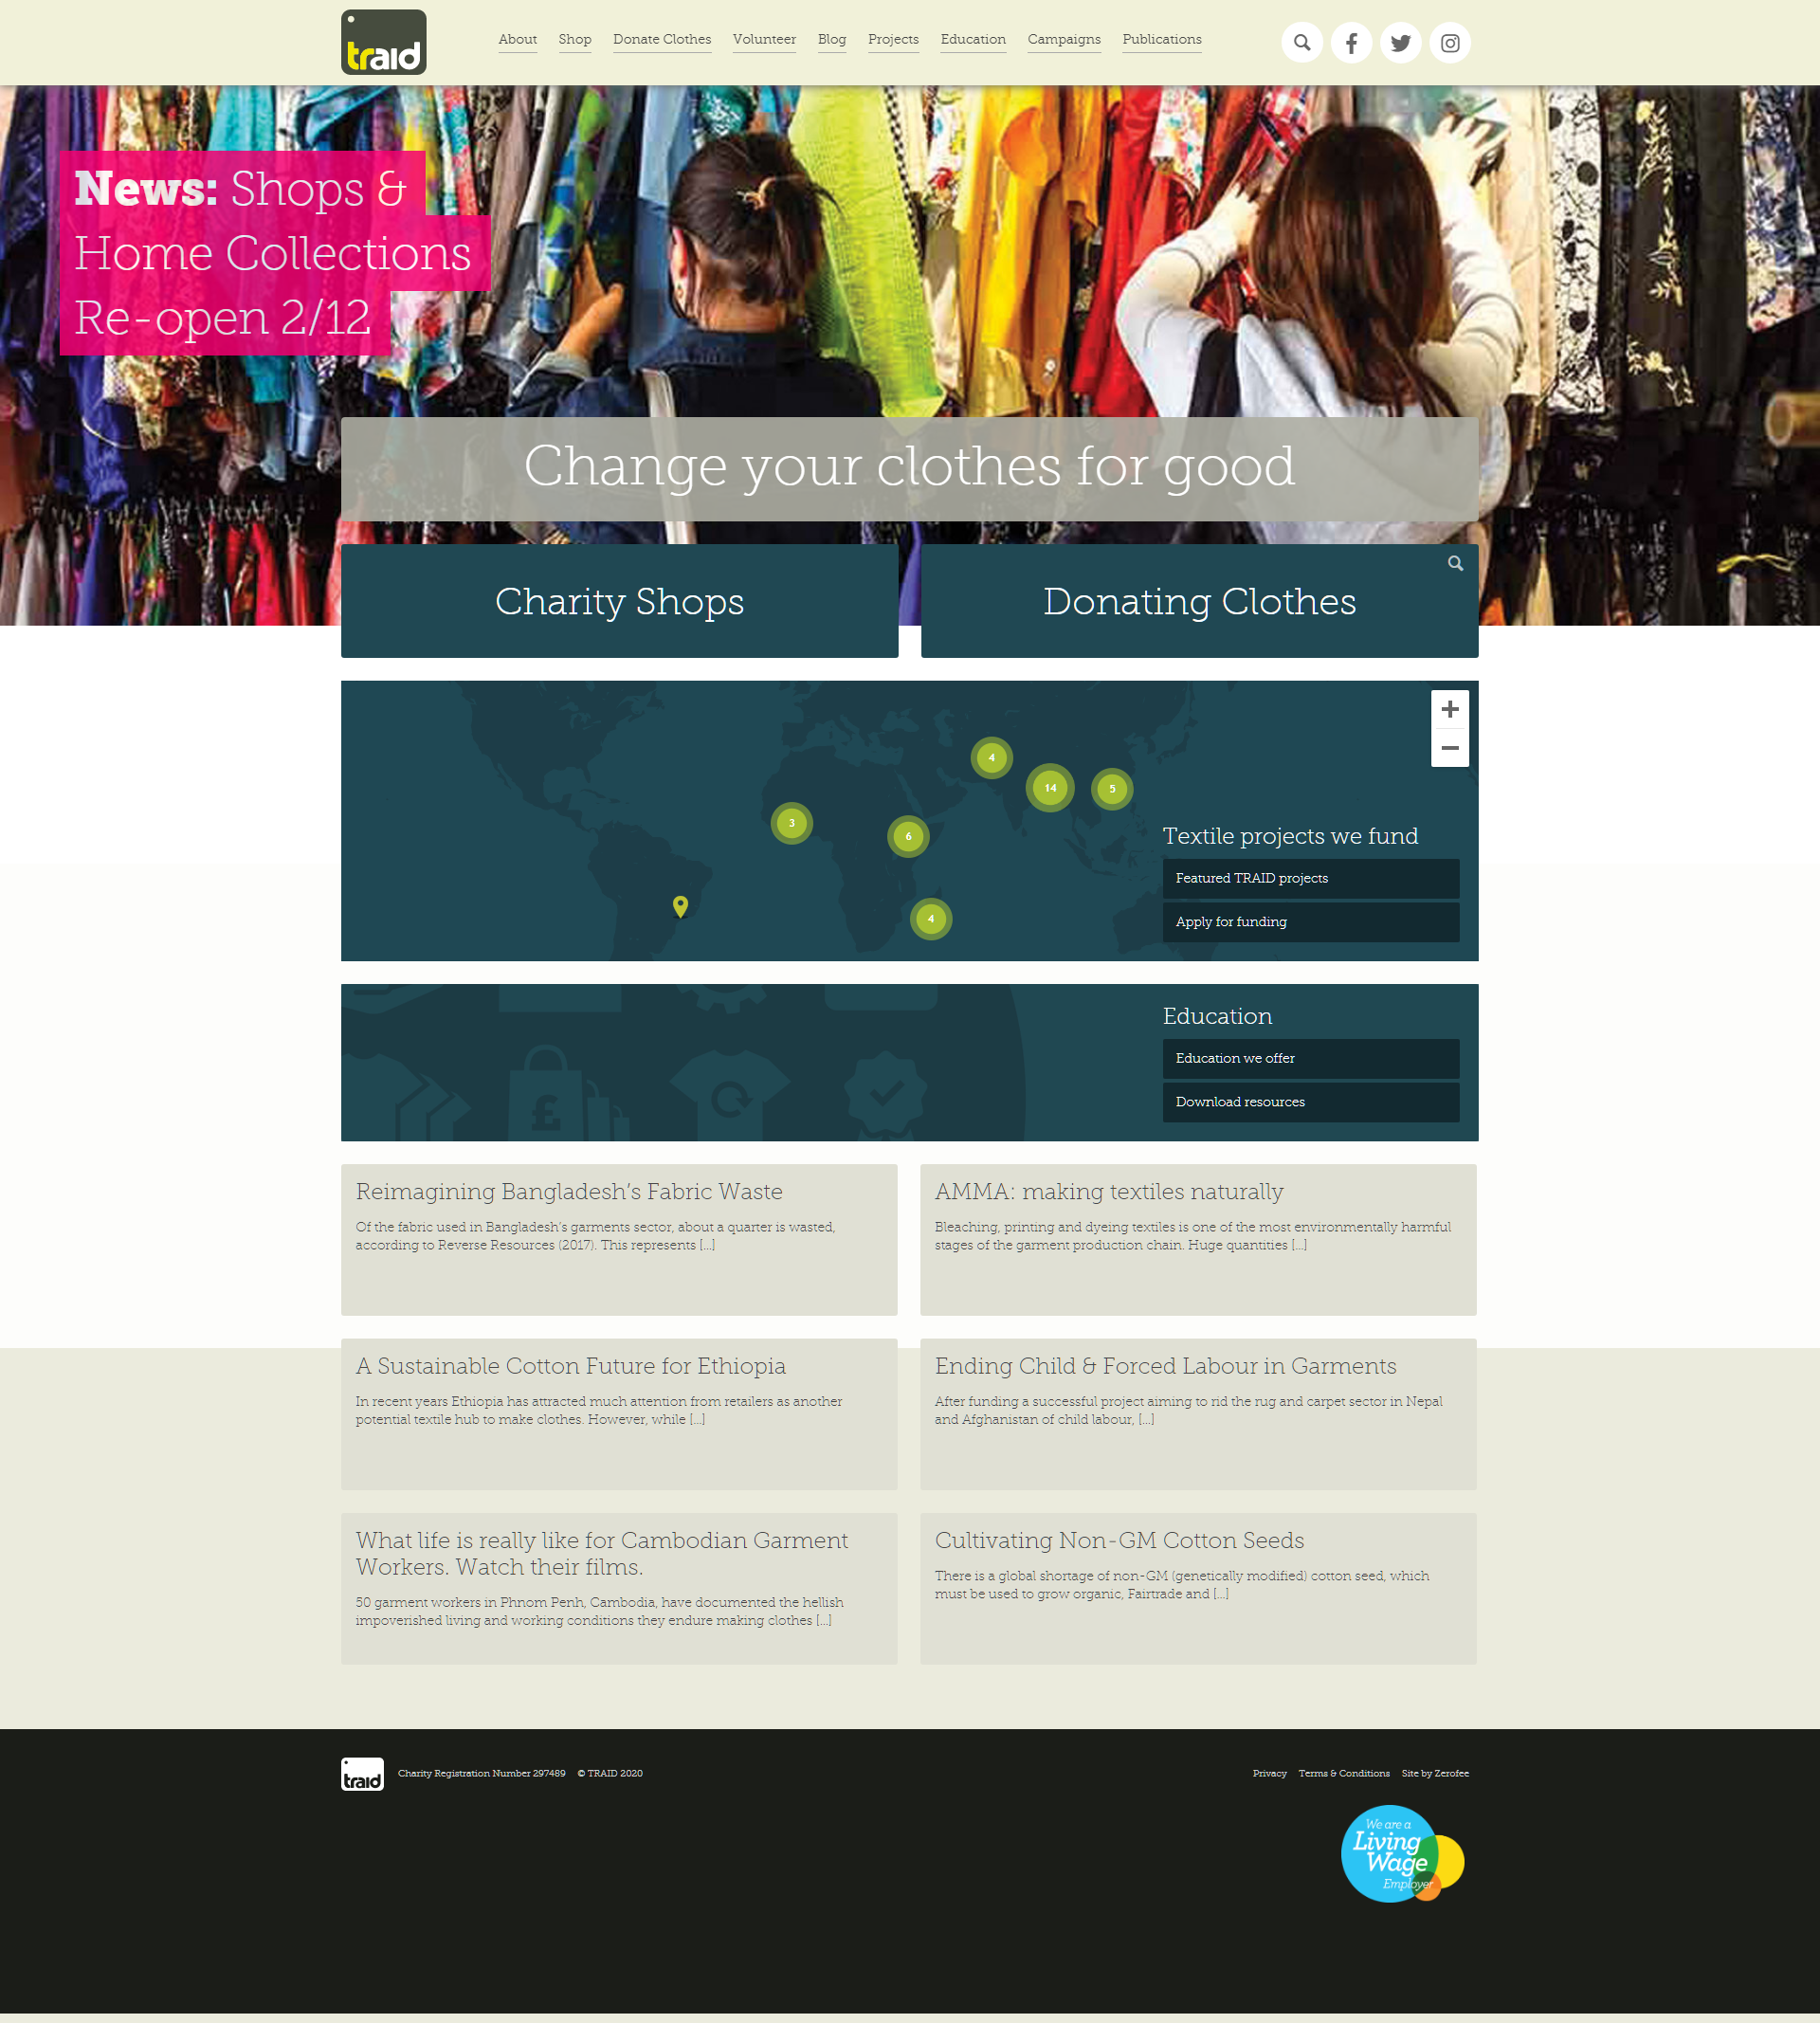 Traid screenshot of website homepage with link to it